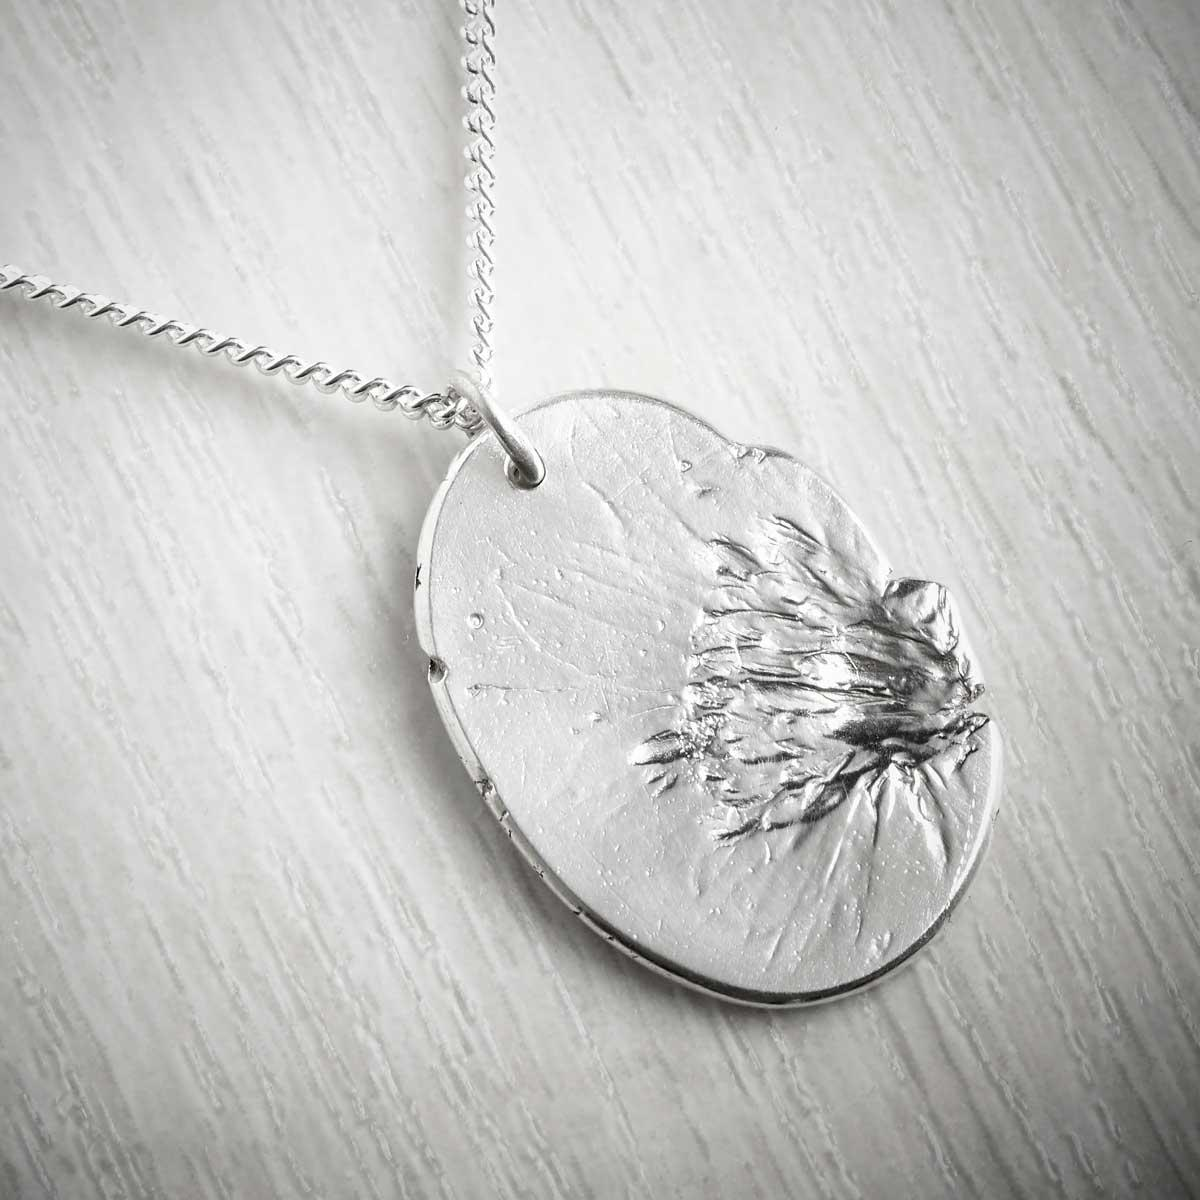 Cosmos October Fossil Pendant by Becca Macdonald. Image property of THE JEWELLERY MAKERS.